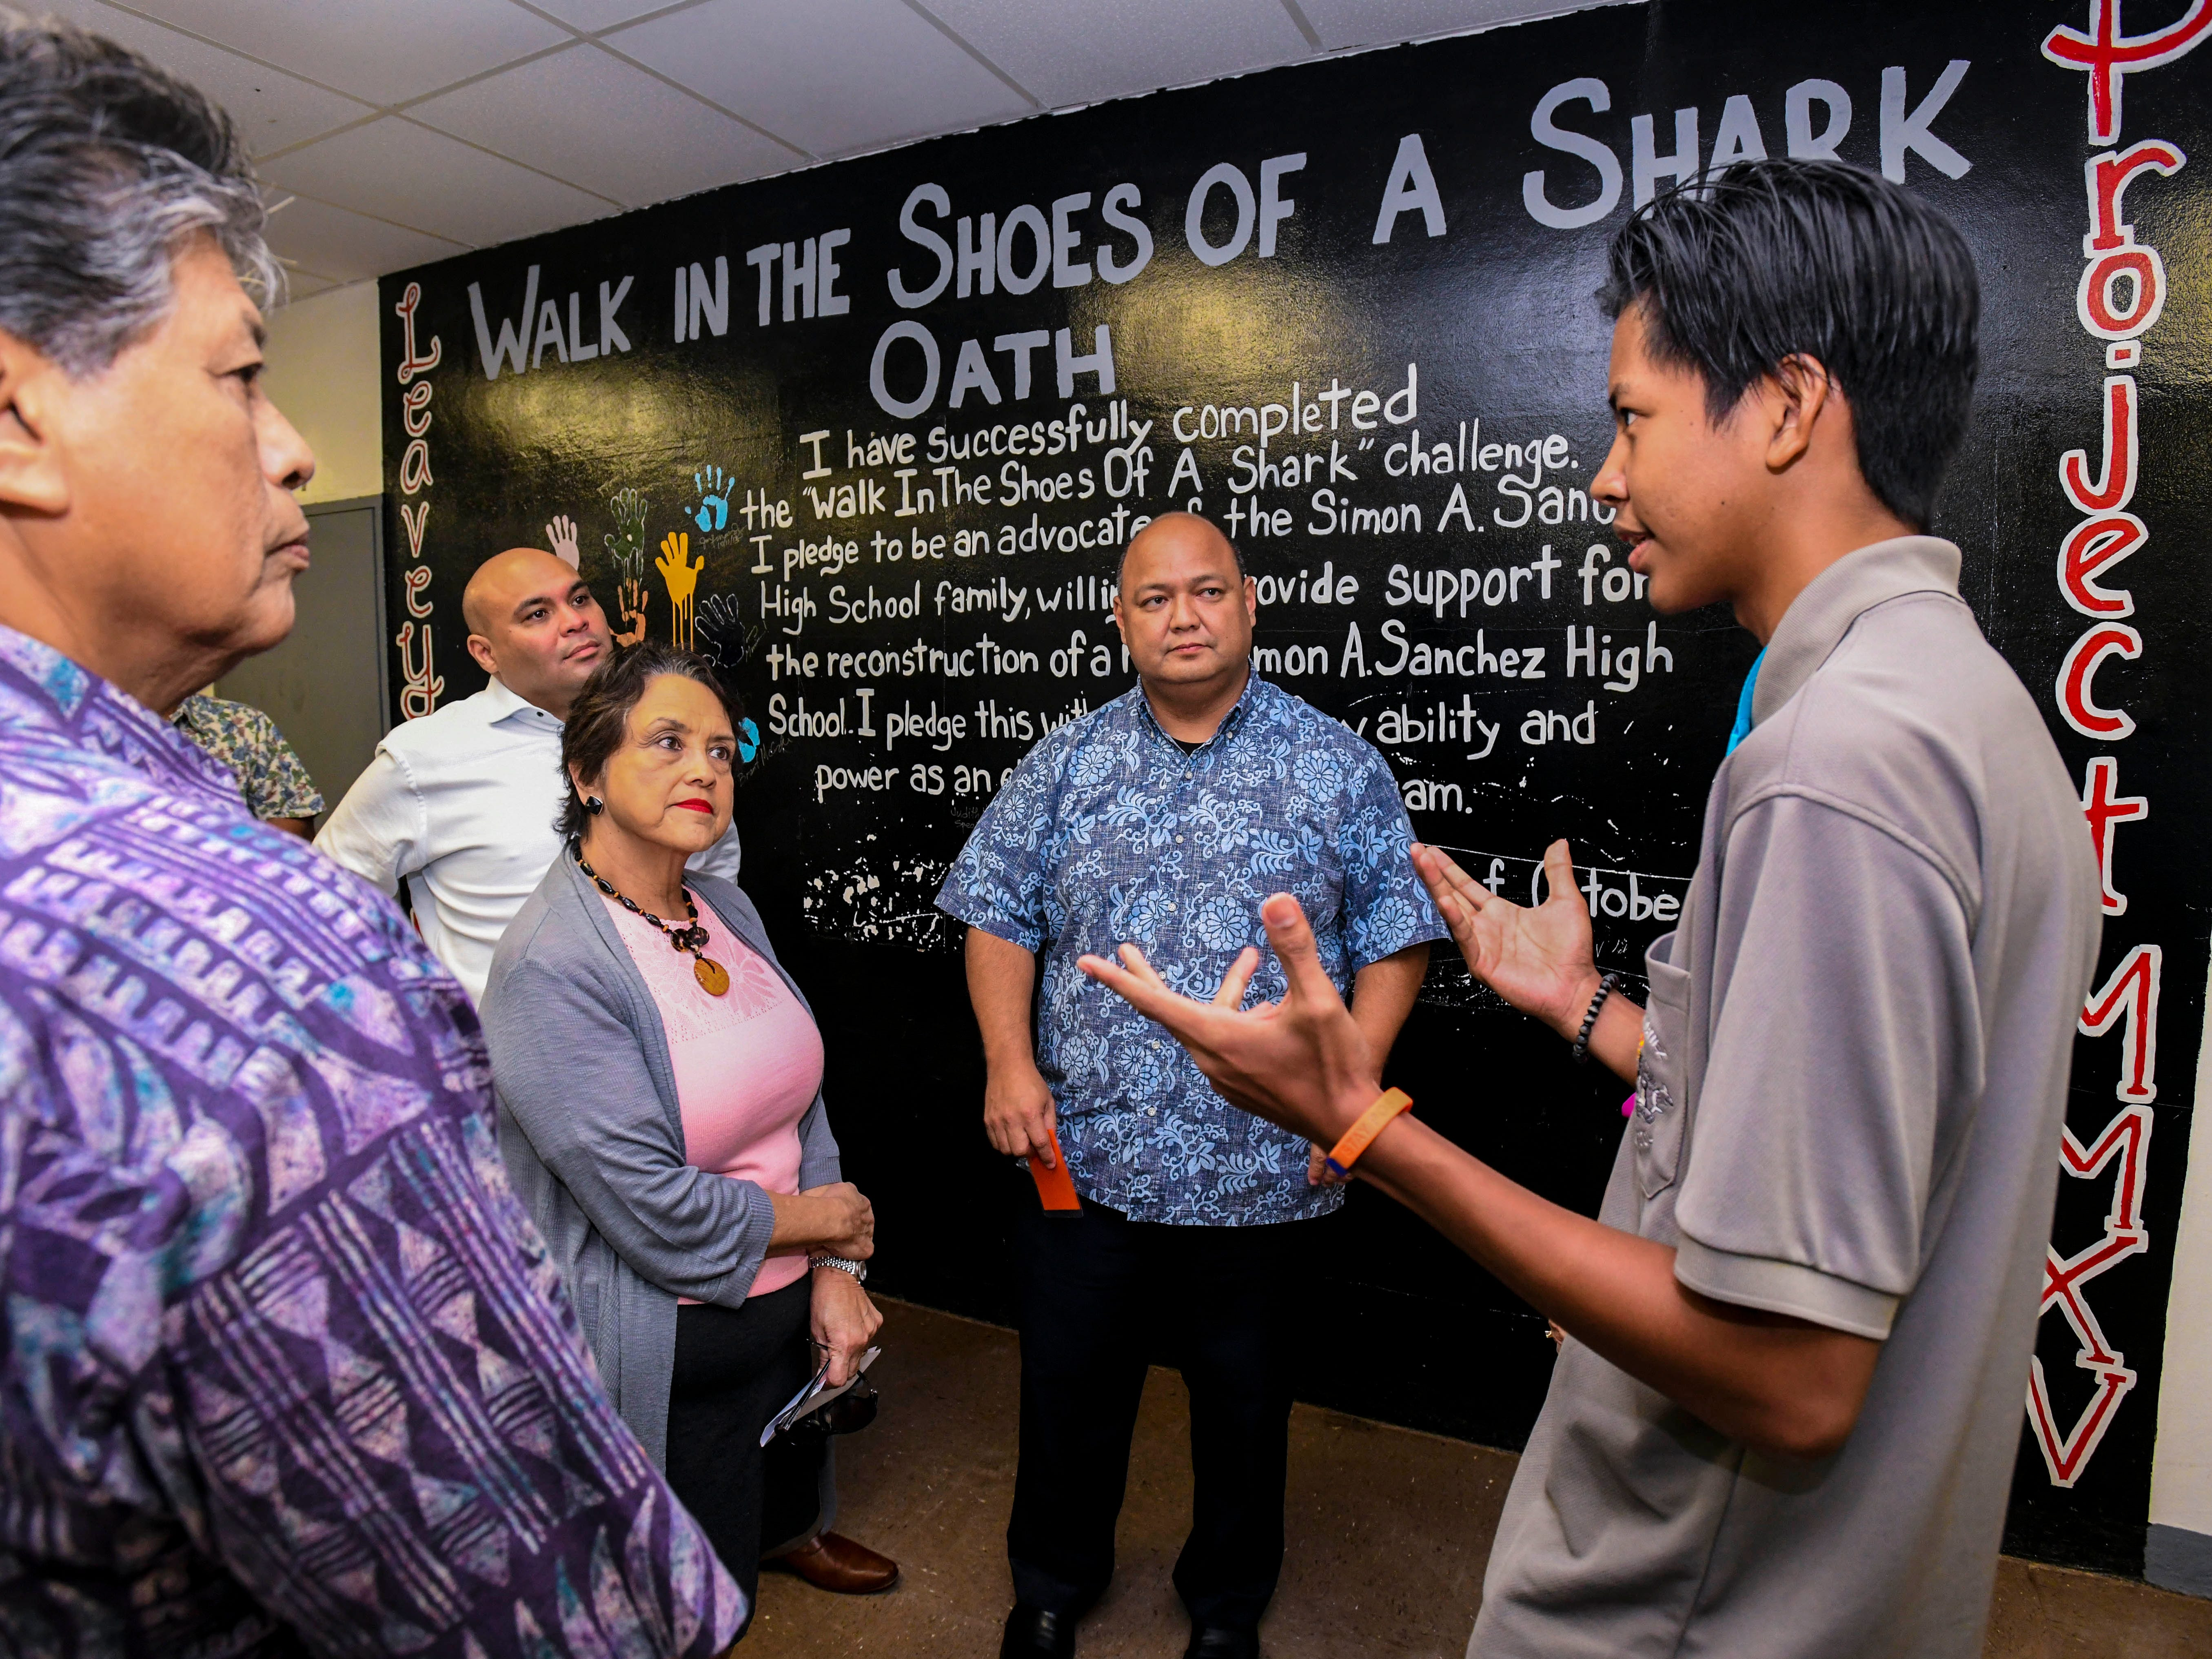 Devin Eligio, right, an Islandwide Board of Governing Students representative, takes a moment to chat with Gov. Lou Leon Guerrero, Lt. Gov. Josh Tenorio, Guam Department of Education Superintendent Jon Fernandez and other officials during their visit to the Simon Sanchez High School campus in Yigo on Friday, Feb. 8, 2019.